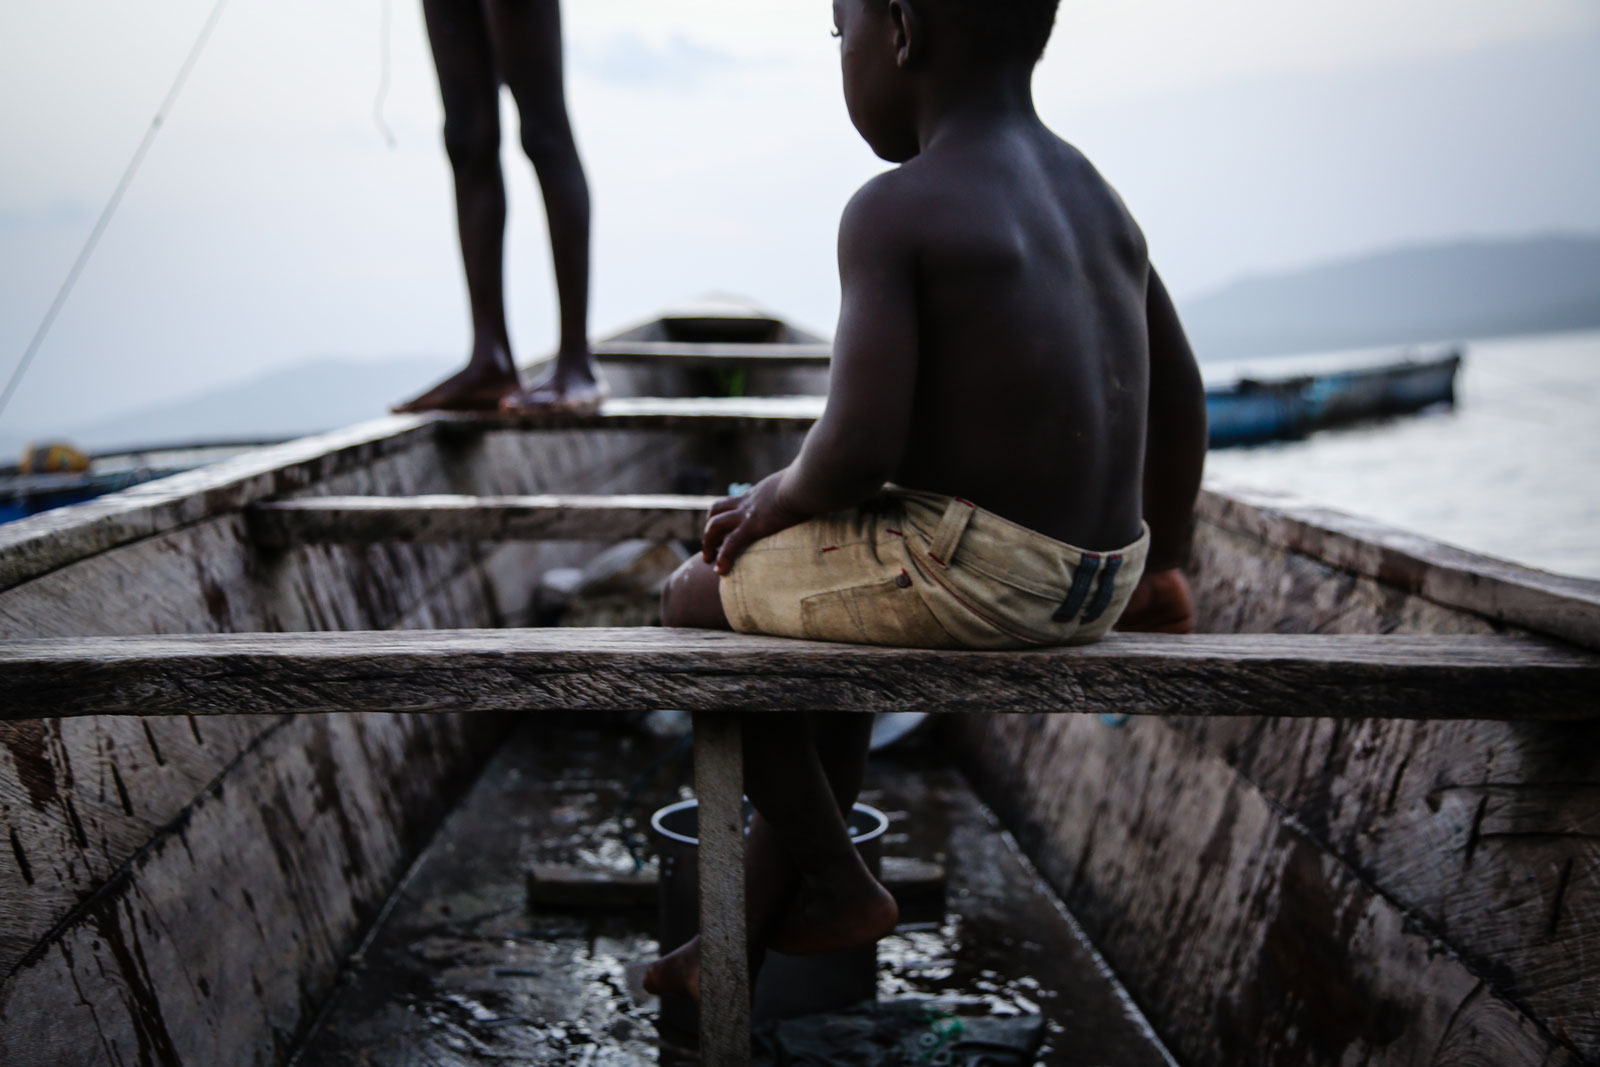 15 Powerful Photos that Capture Child Slavery #12